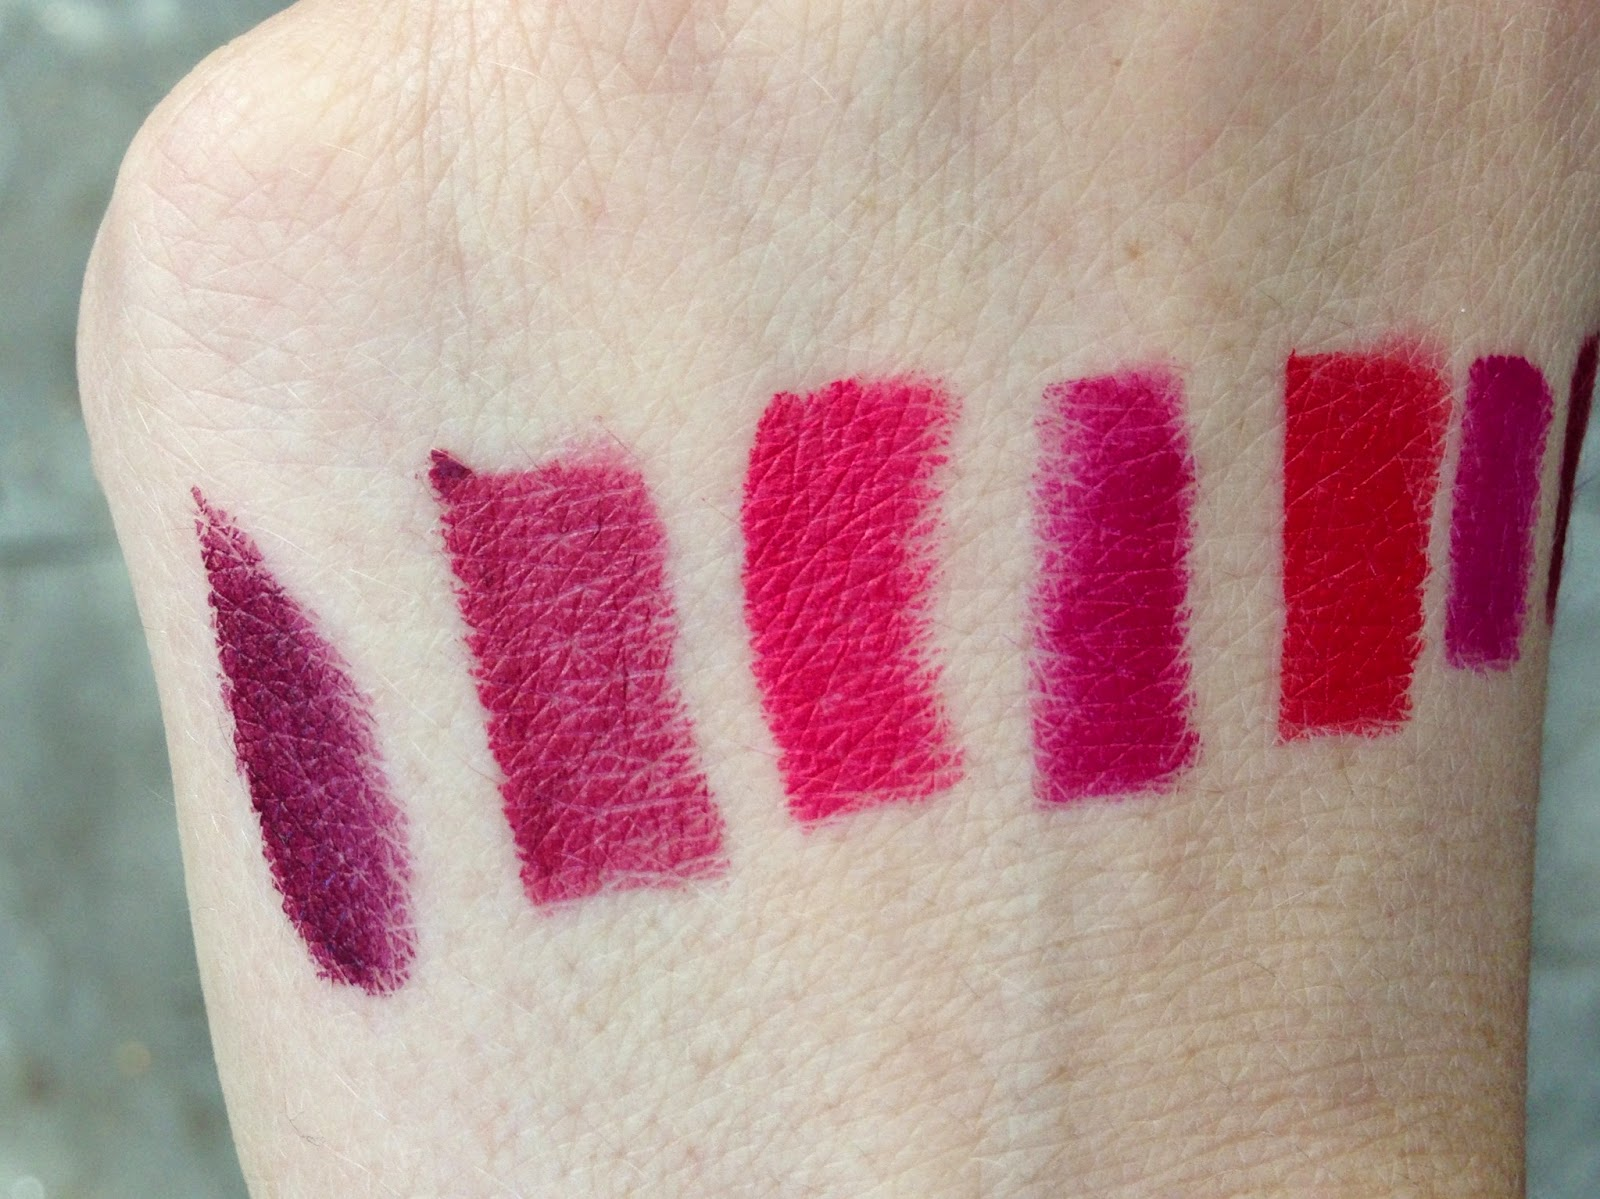 Populaire auxiliary beauty: NARS Audacious Lipstick Swatches and the Allure  AP13